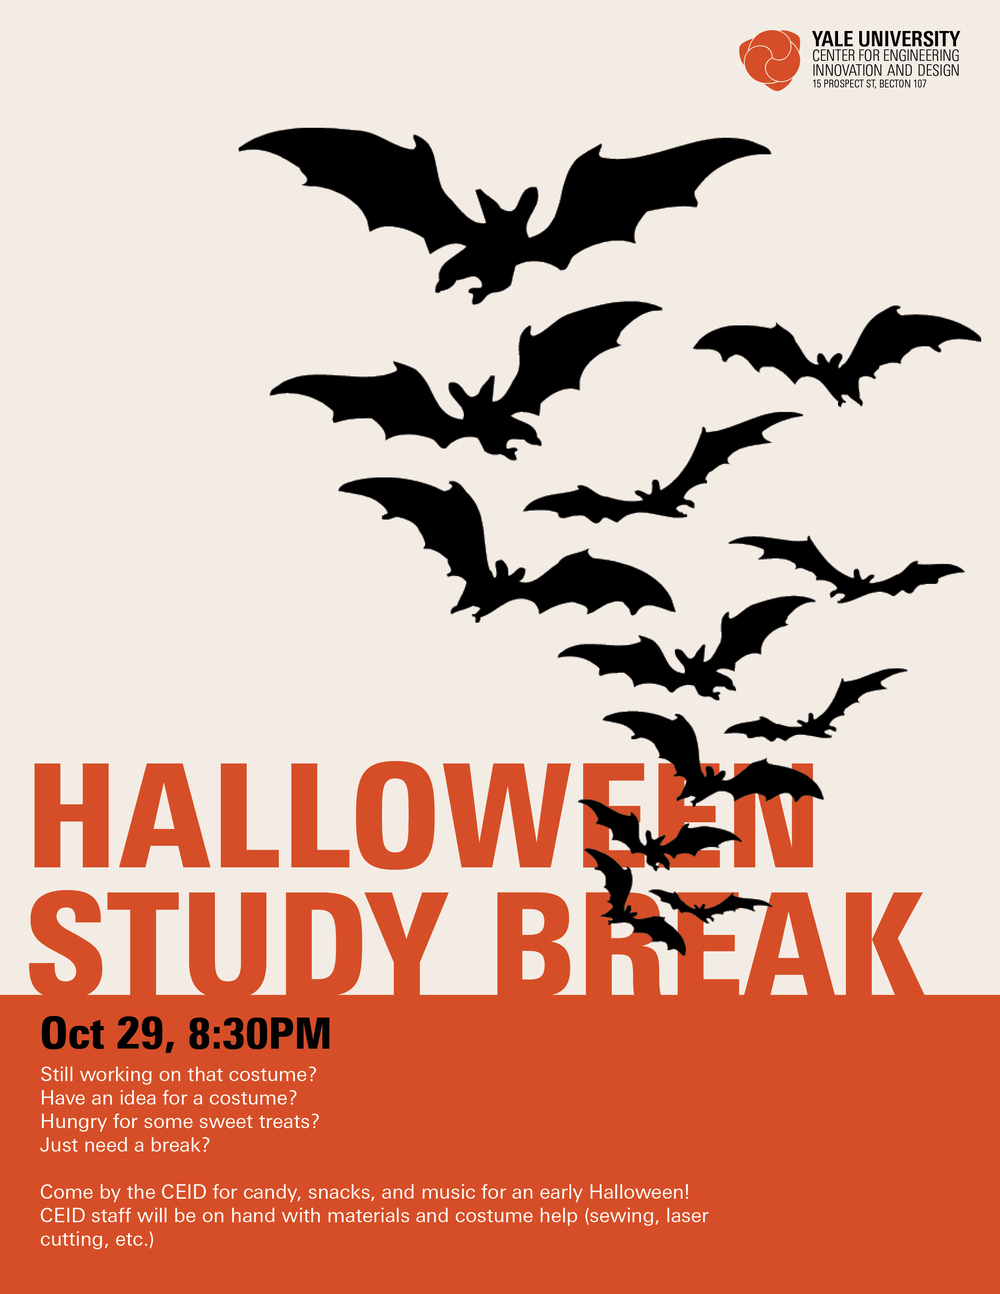 Still working on that costume? Have an idea for a costume? Hungry for some sweet treats? Just need a   break  ?   Come by the CEID for candy, snacks, and music for an early   Halloween  ! CEID staff will be on hand with materials and costume help -- sewing, laser cutting, etc.